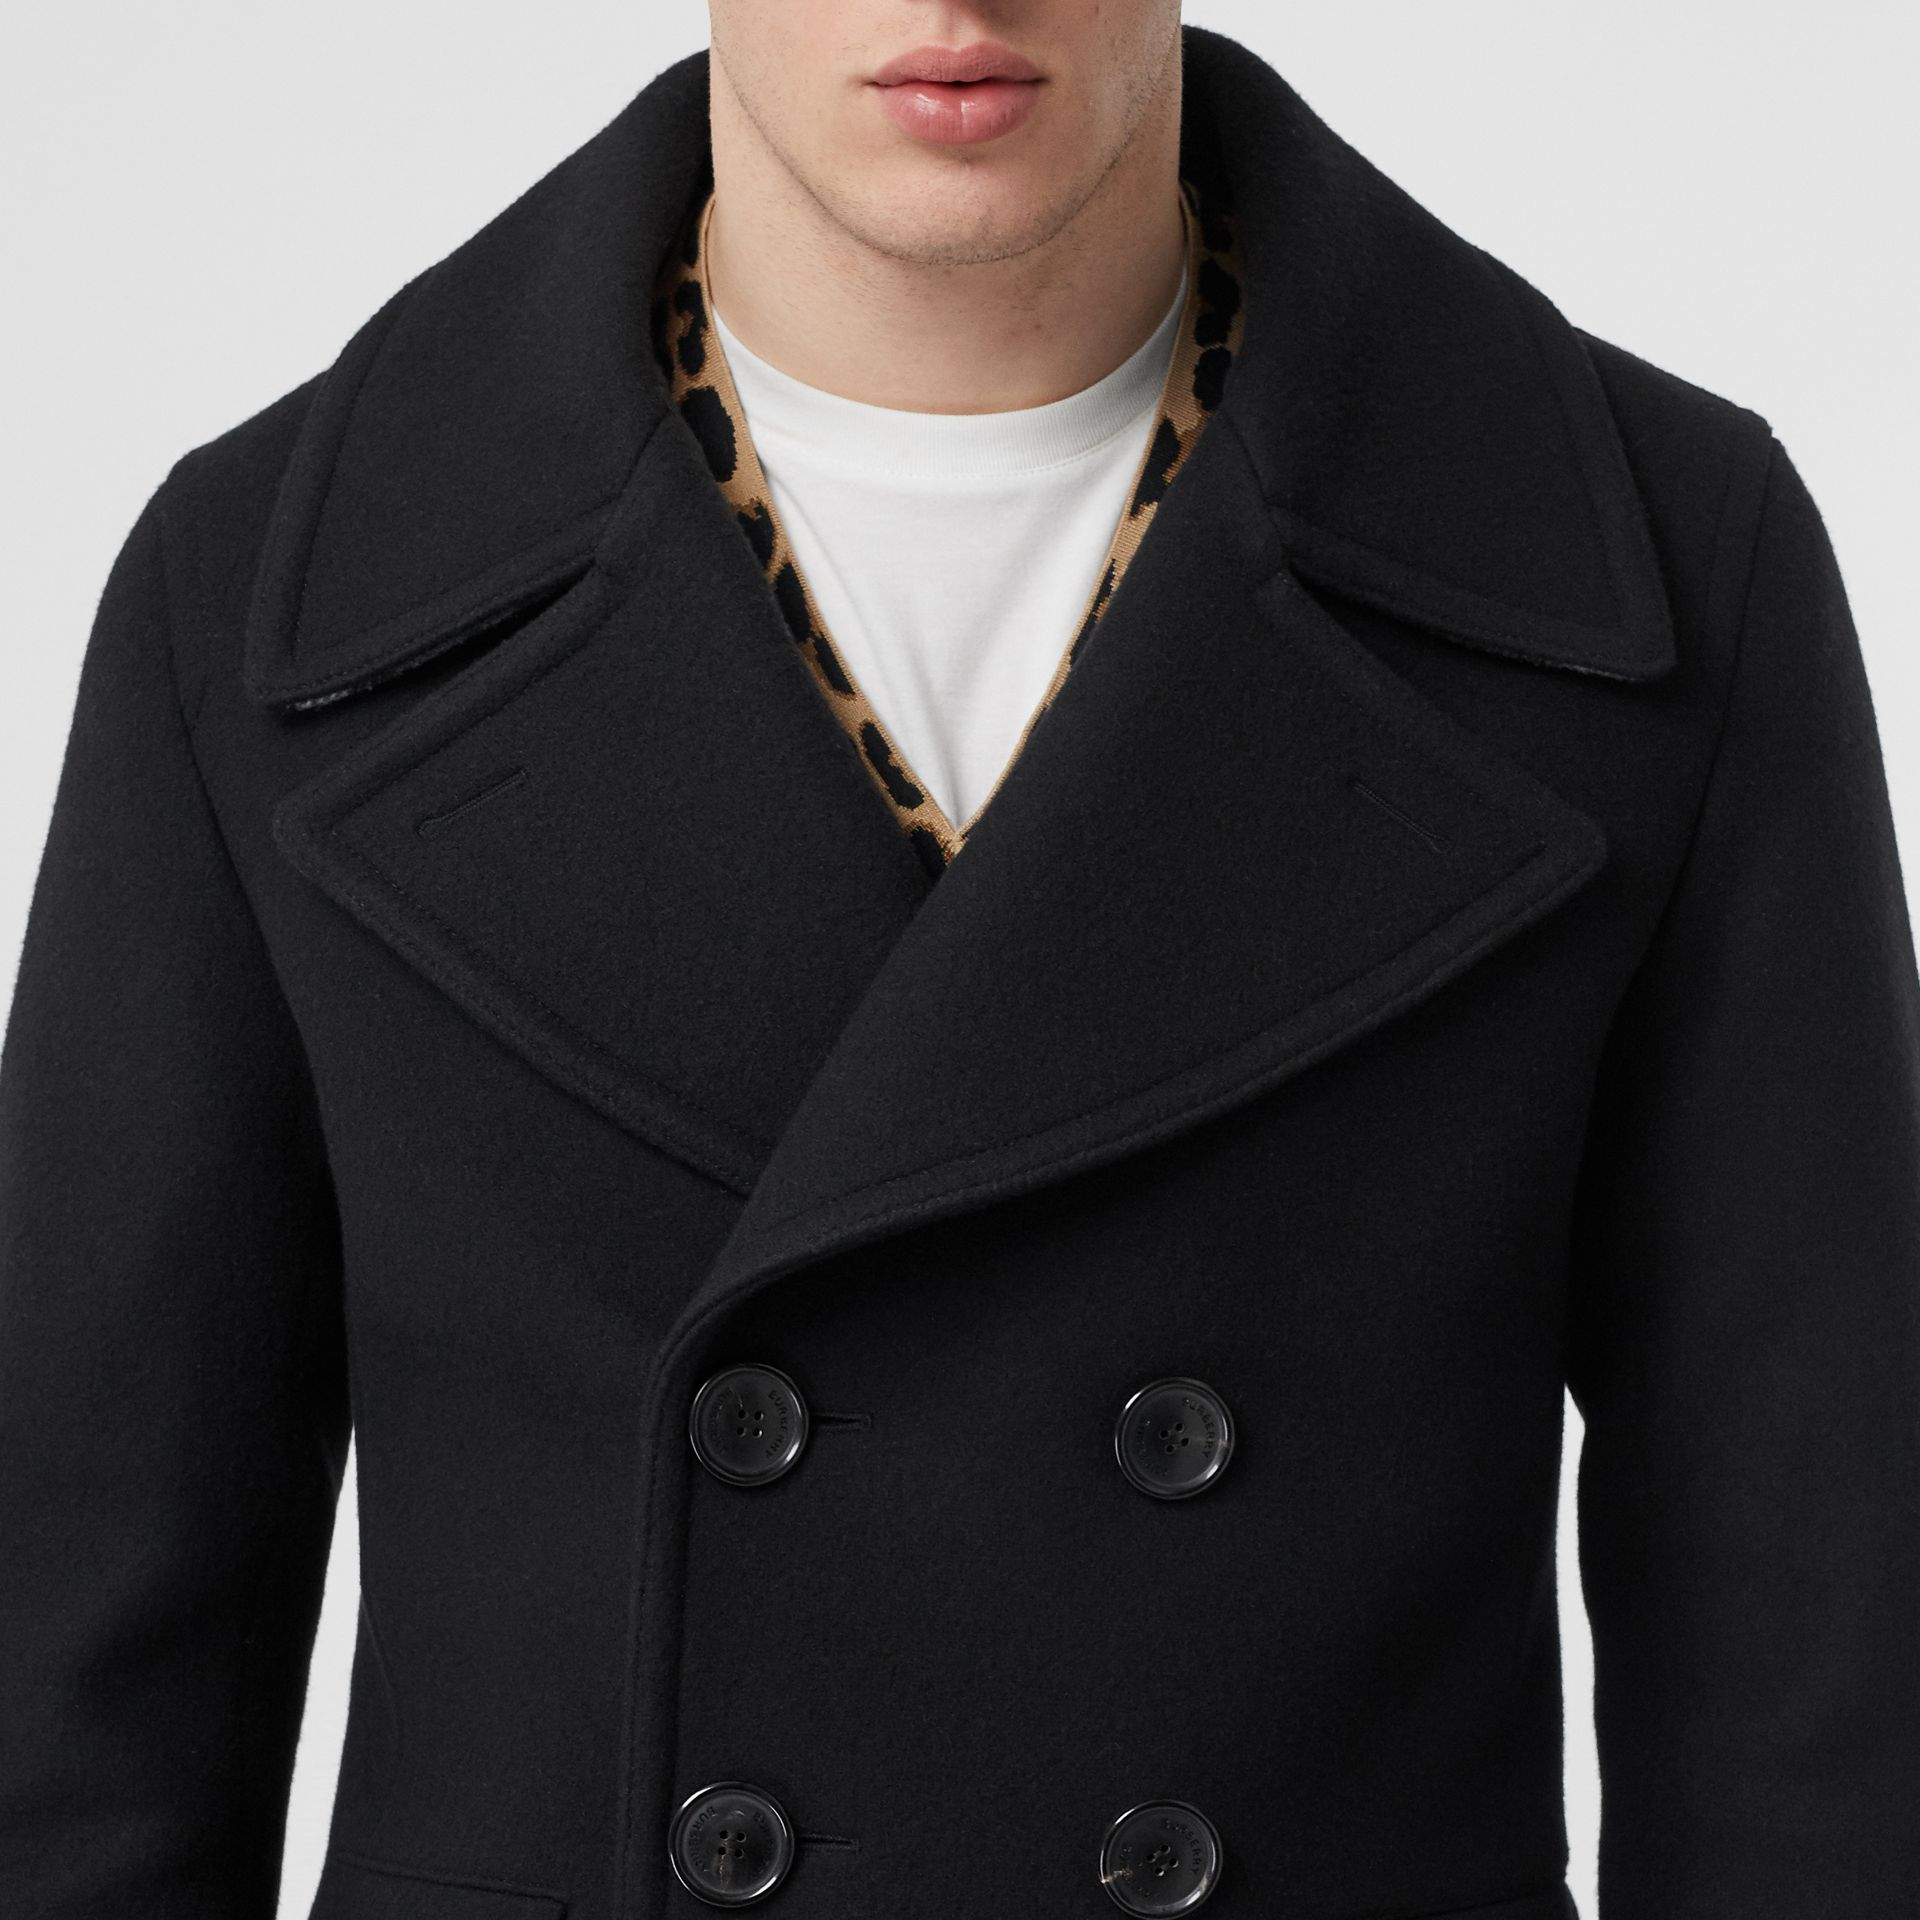 Wool Blend Pea Coat in Black - Men | Burberry Canada - gallery image 4